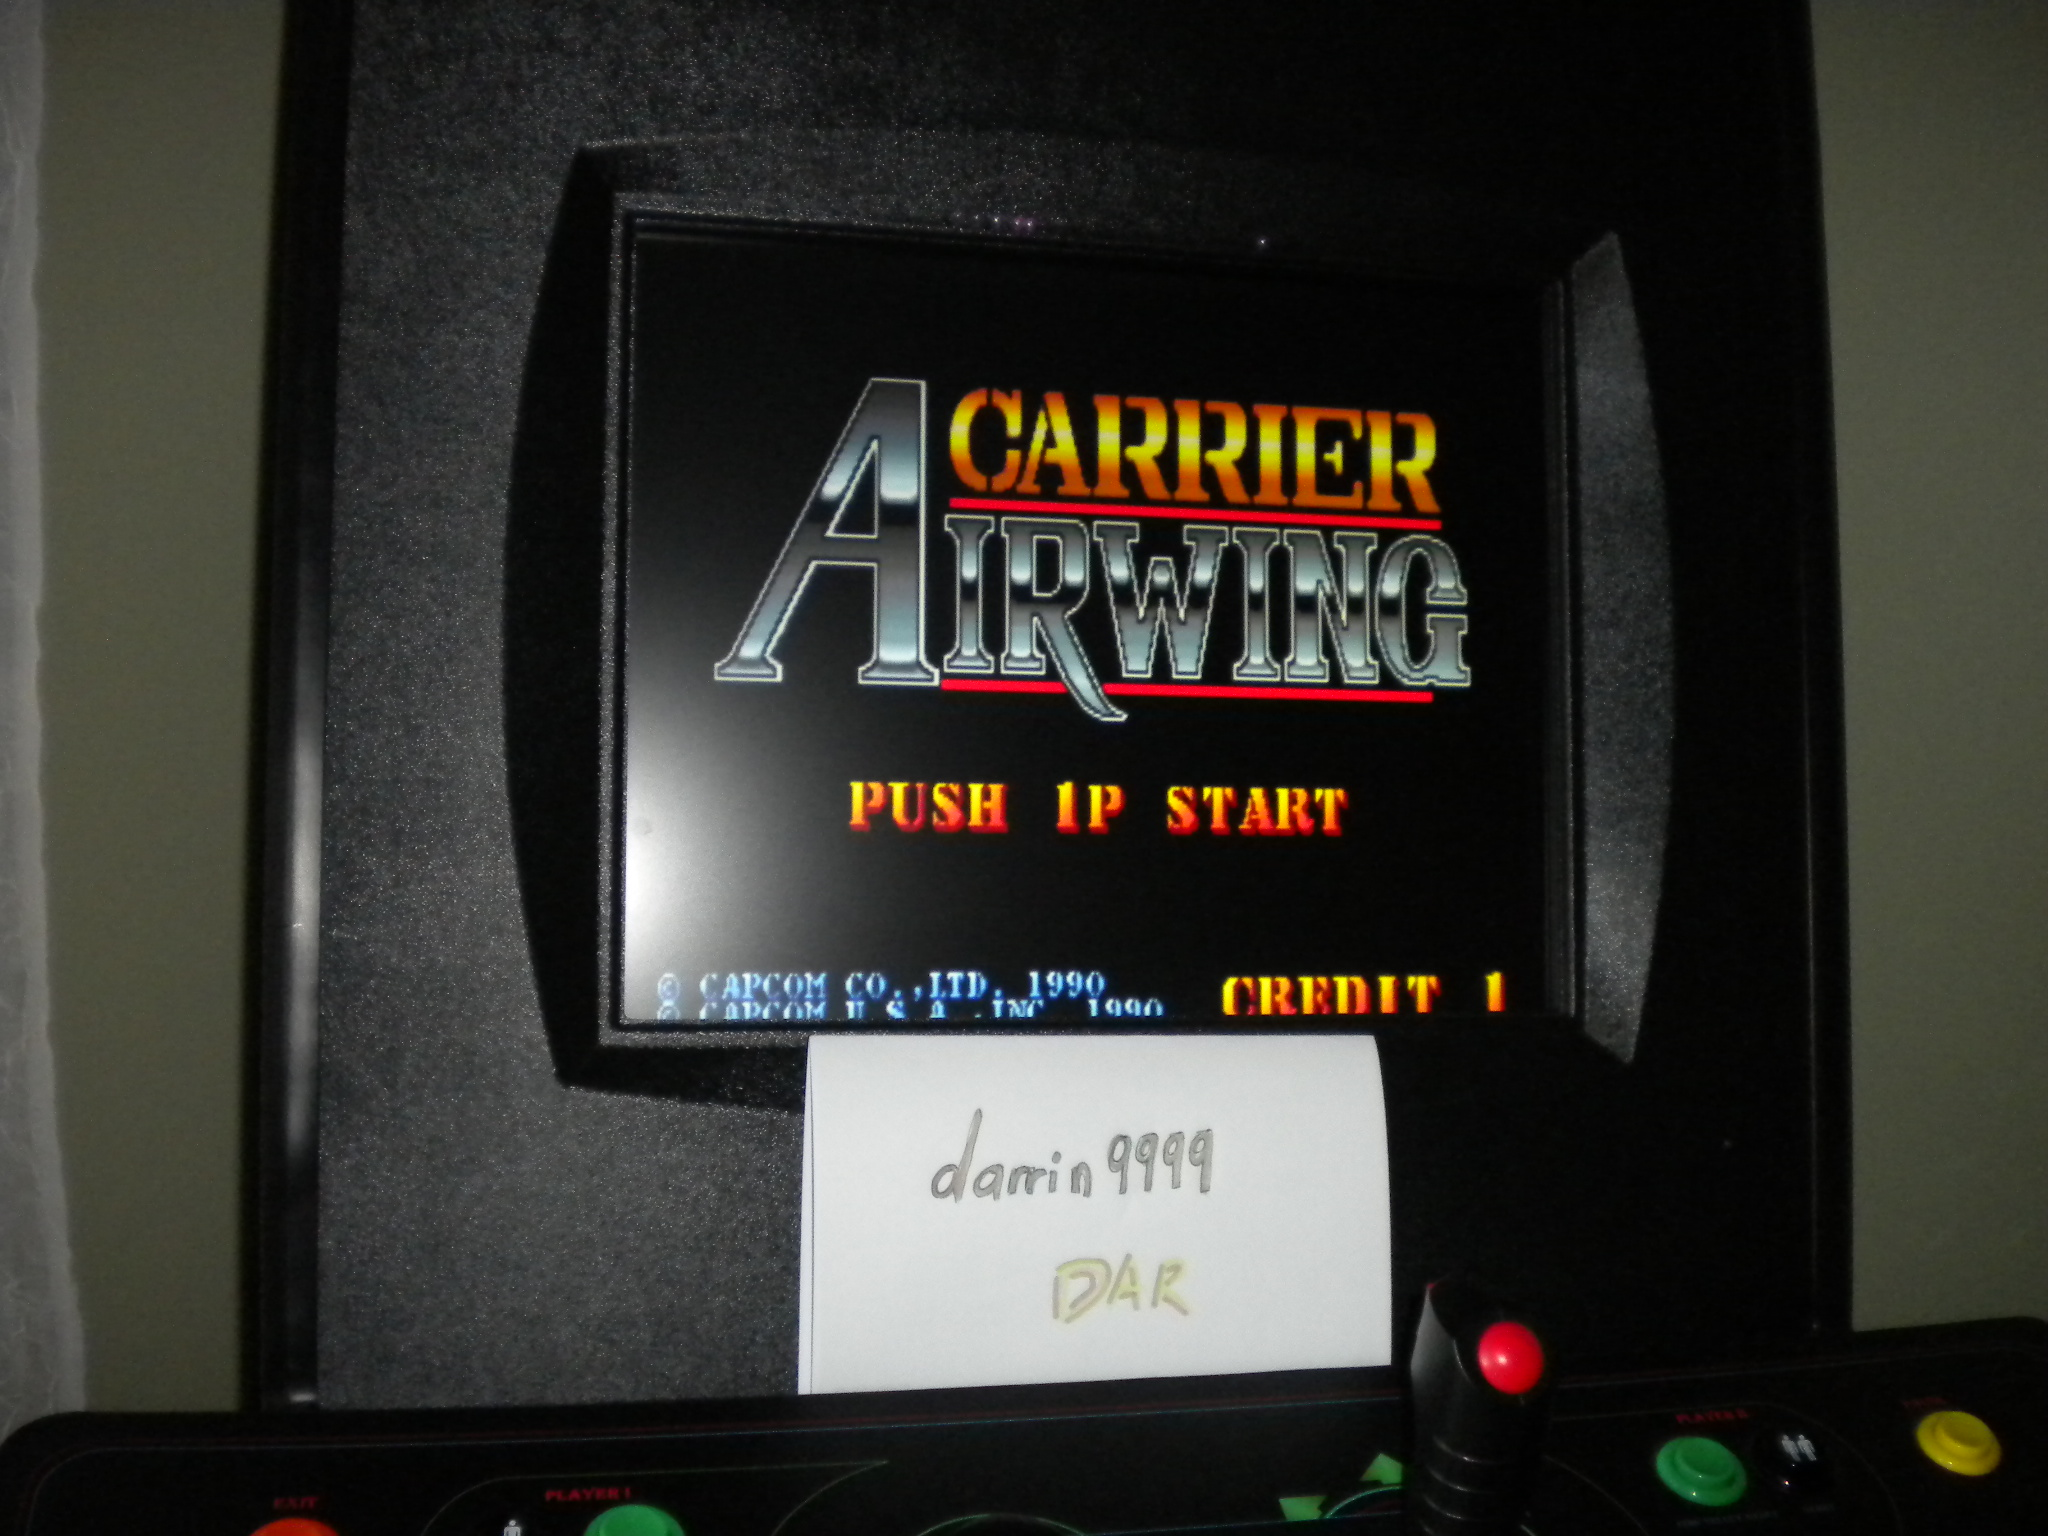 Carrier Air Wing [cawing] 10,640 points